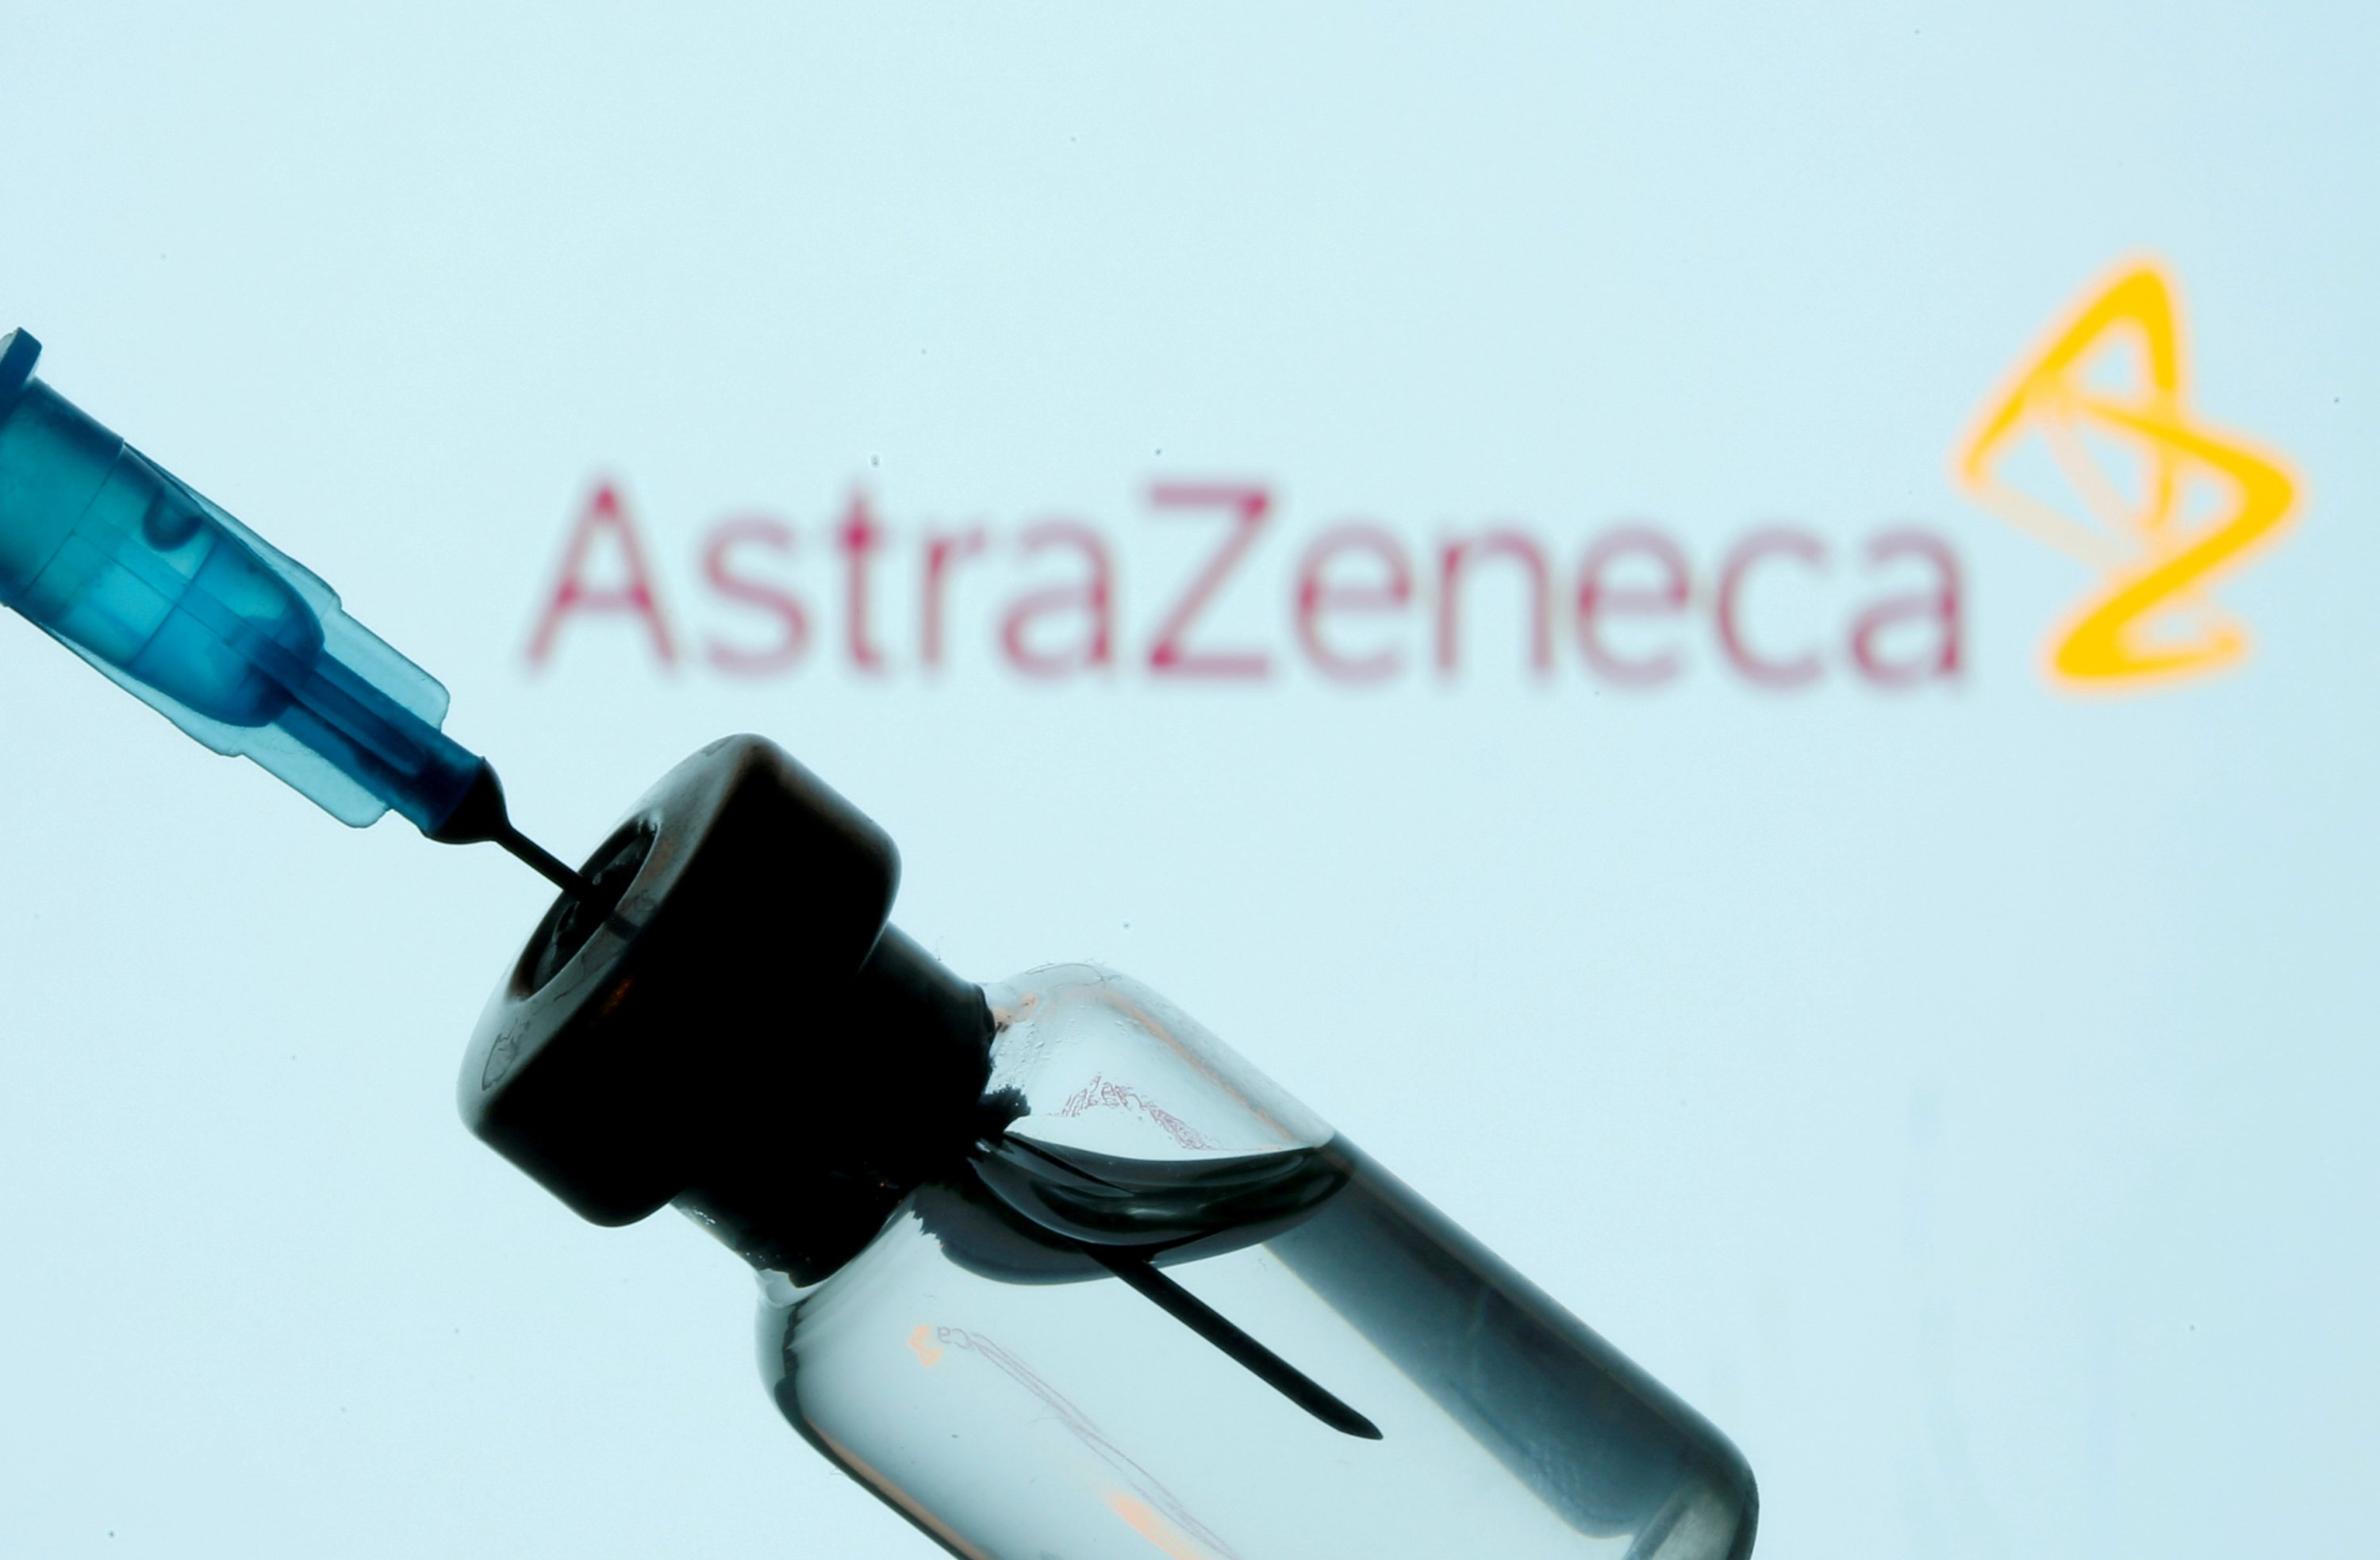 south africa halts astrazeneca rollout